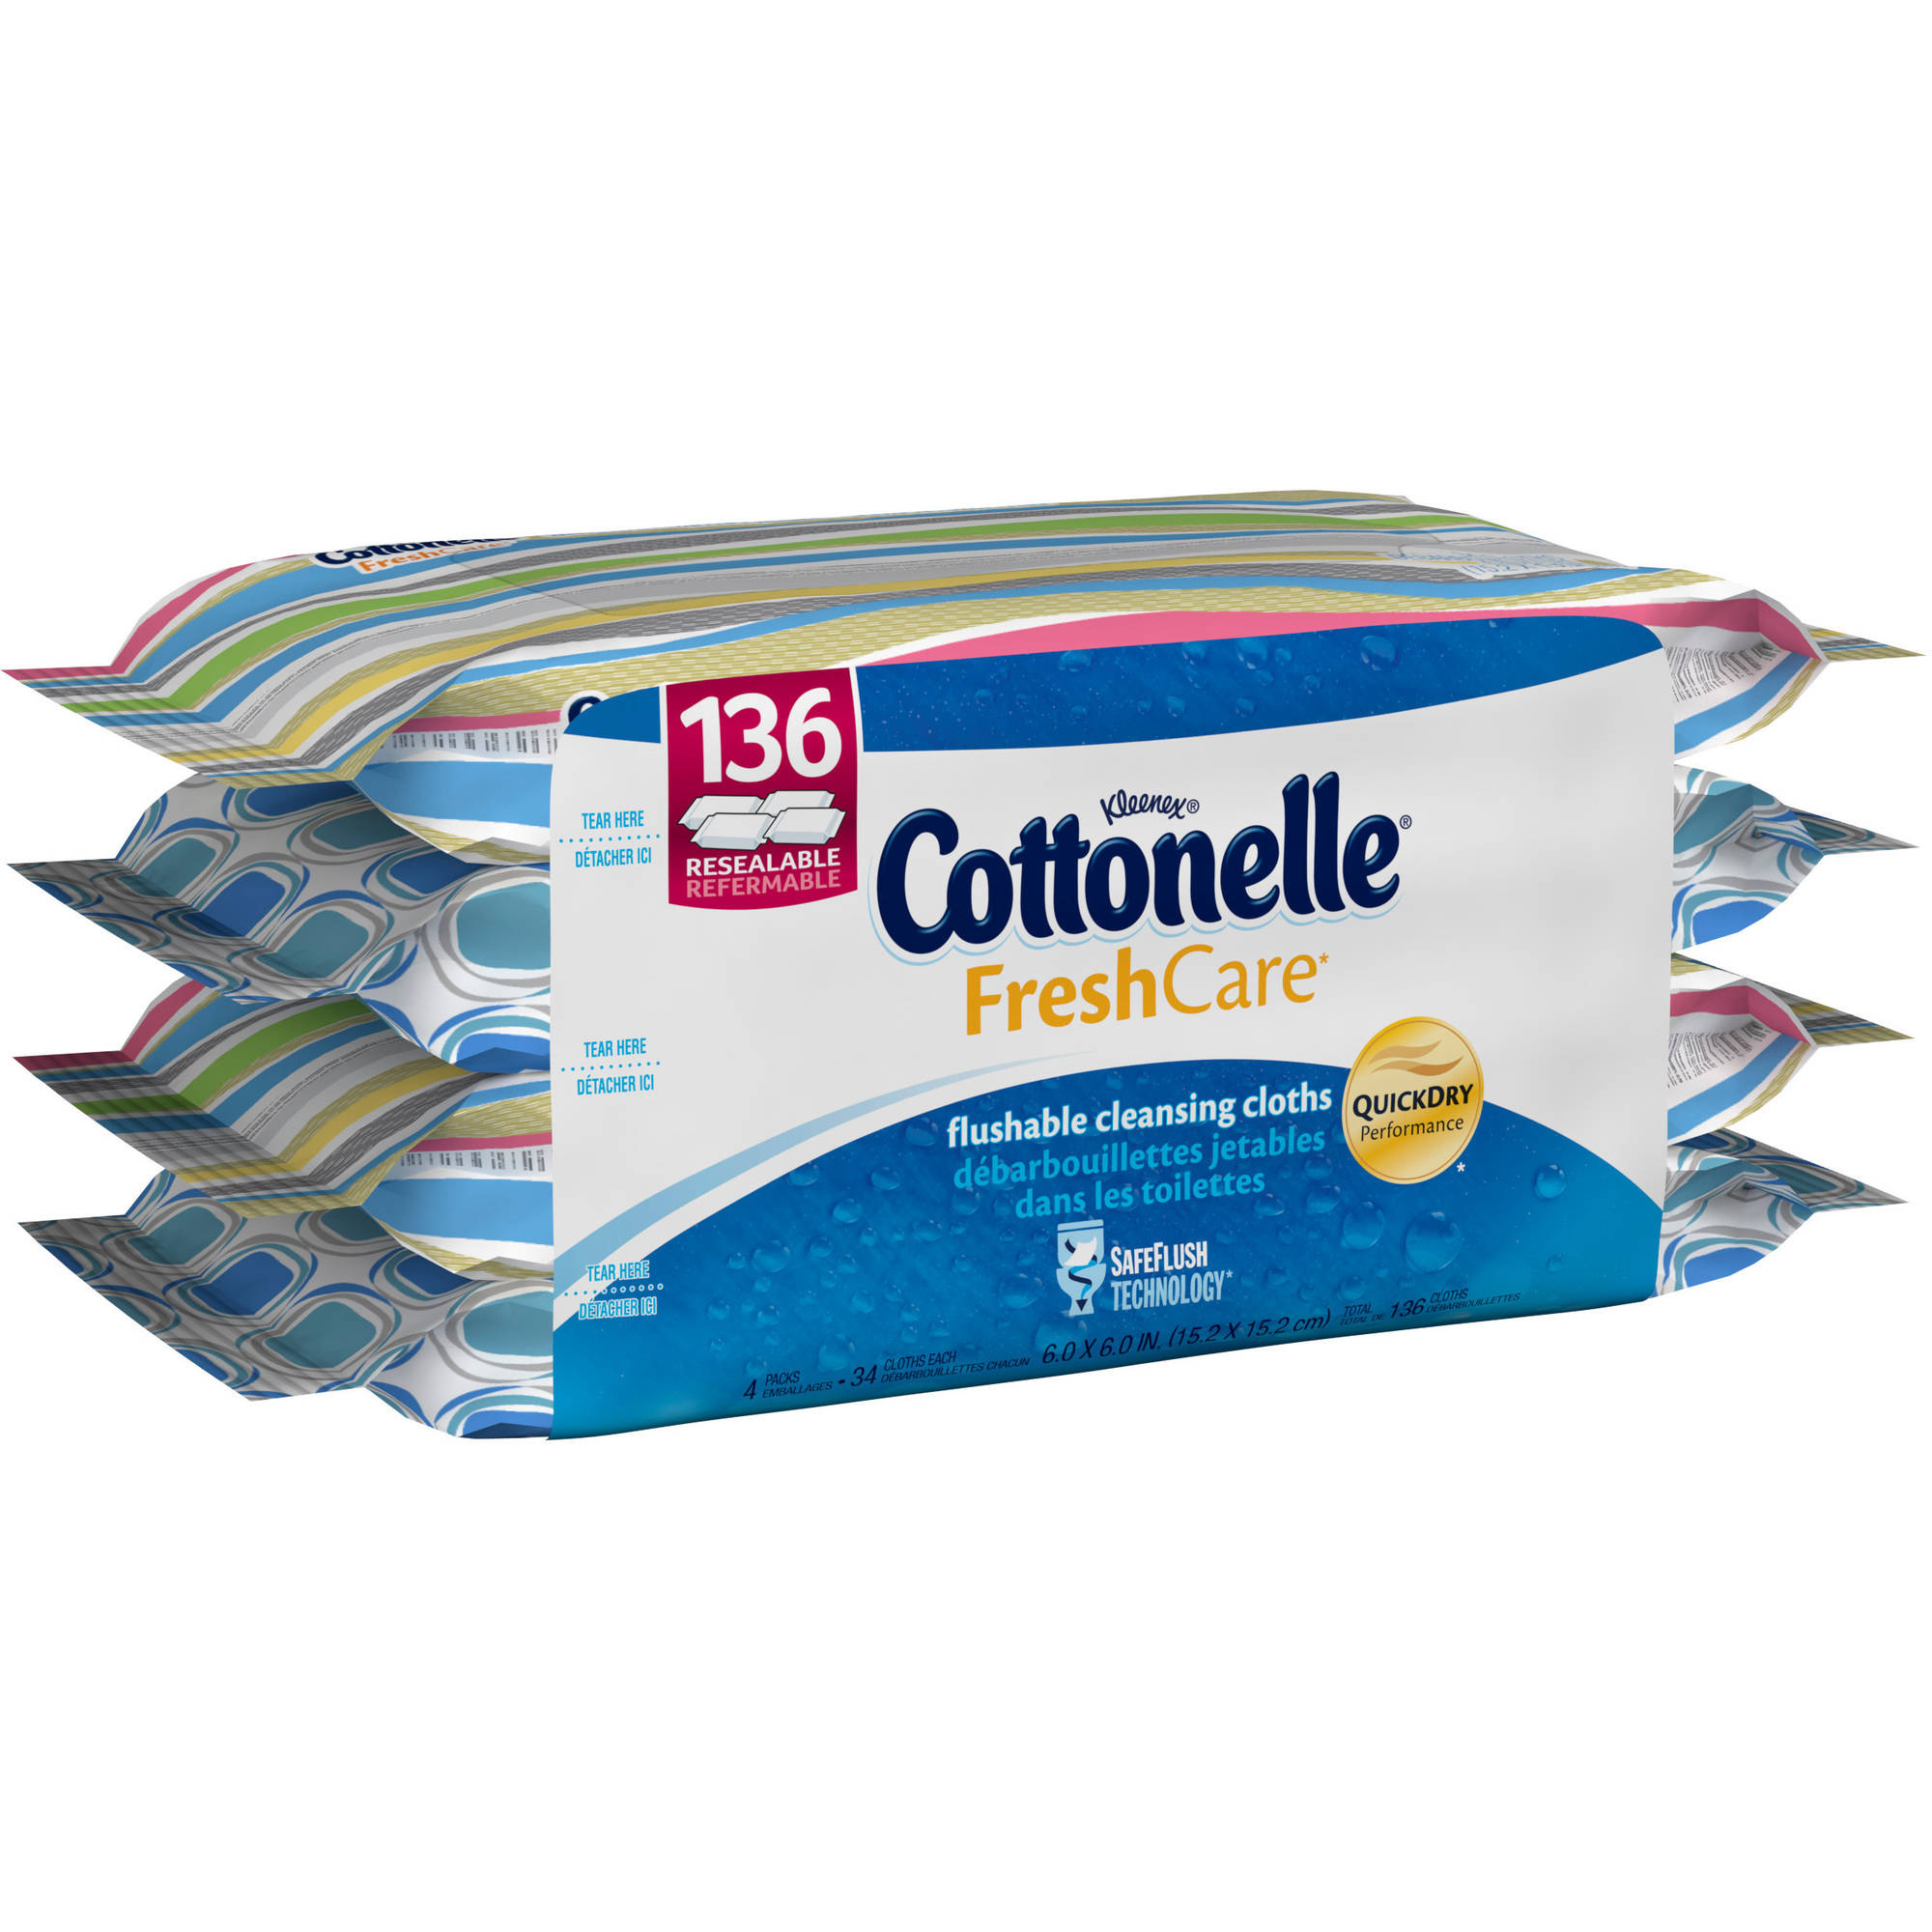 Cottonelle FreshCare Flushable Cleansing Cloths, 34 sheets, (Pack of 4)